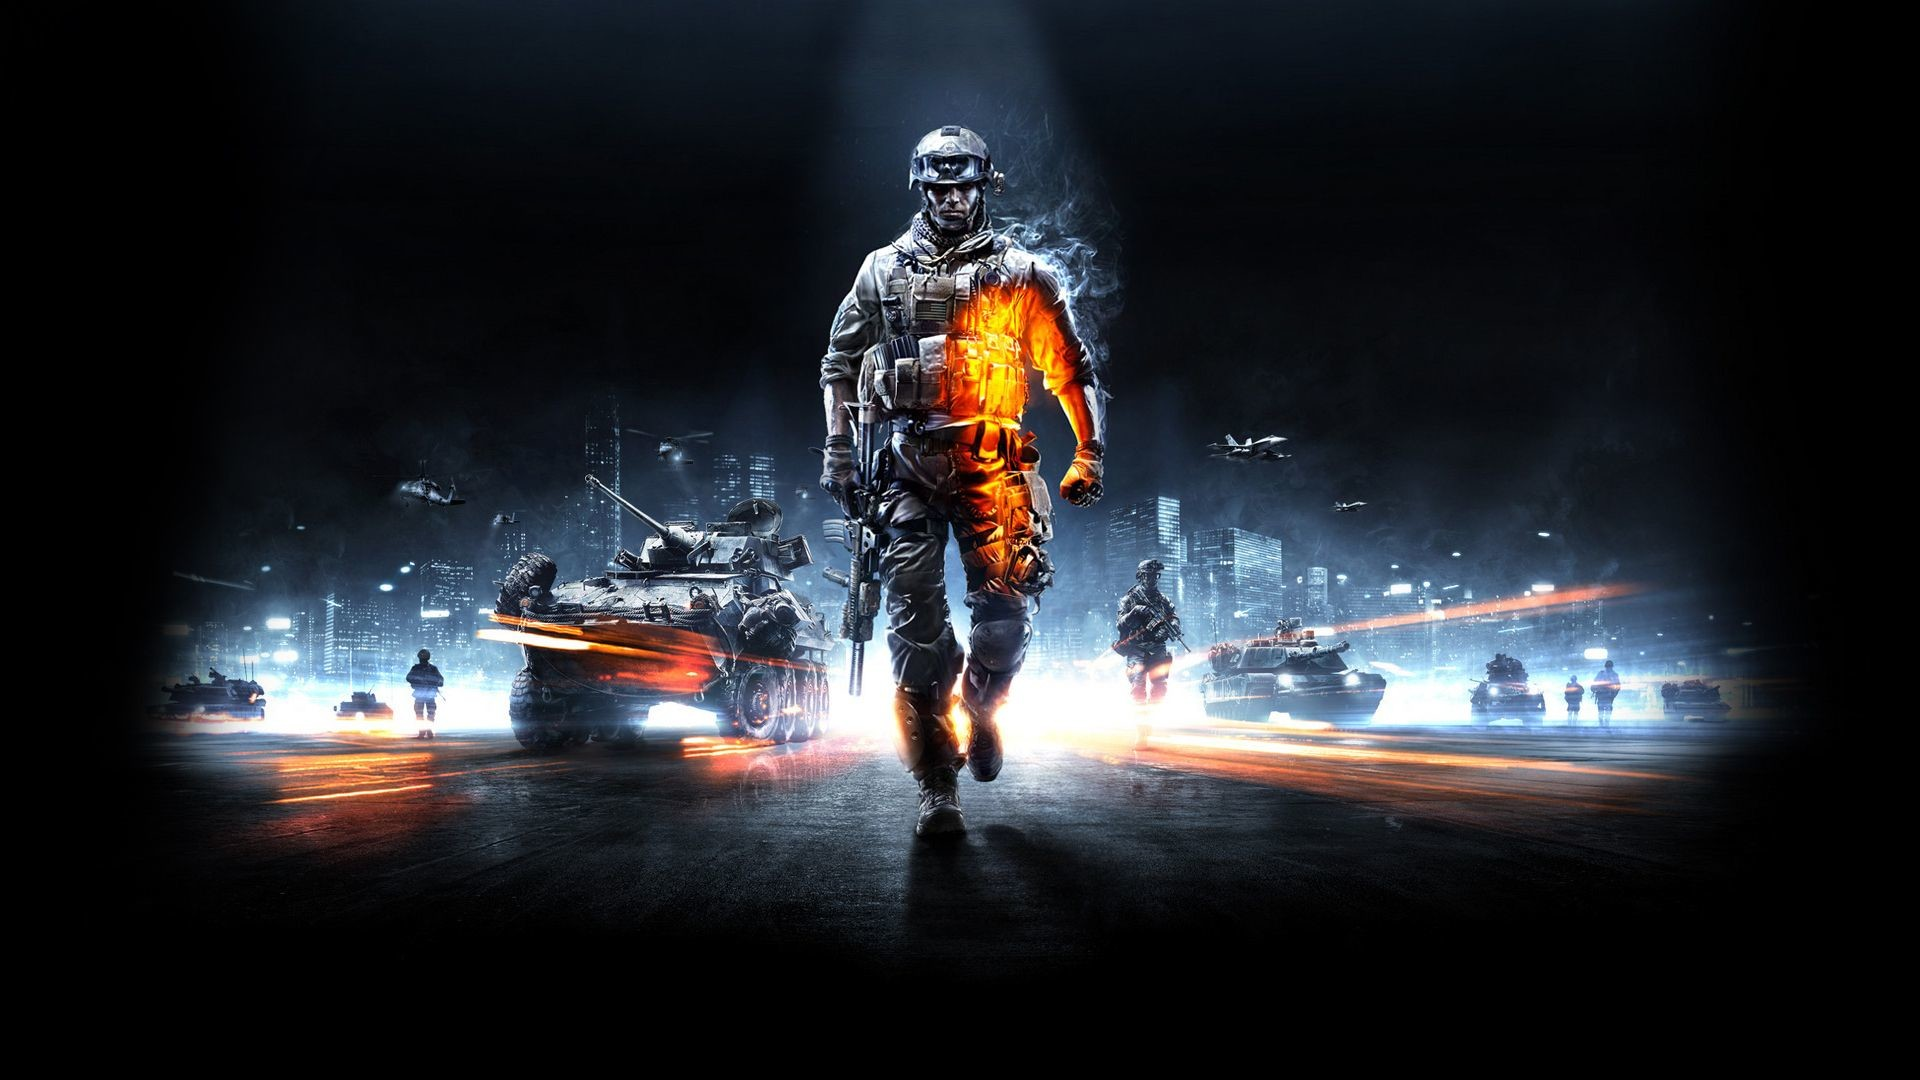 Battlefield Hd Wallpapers 1080p 88 Background Pictures